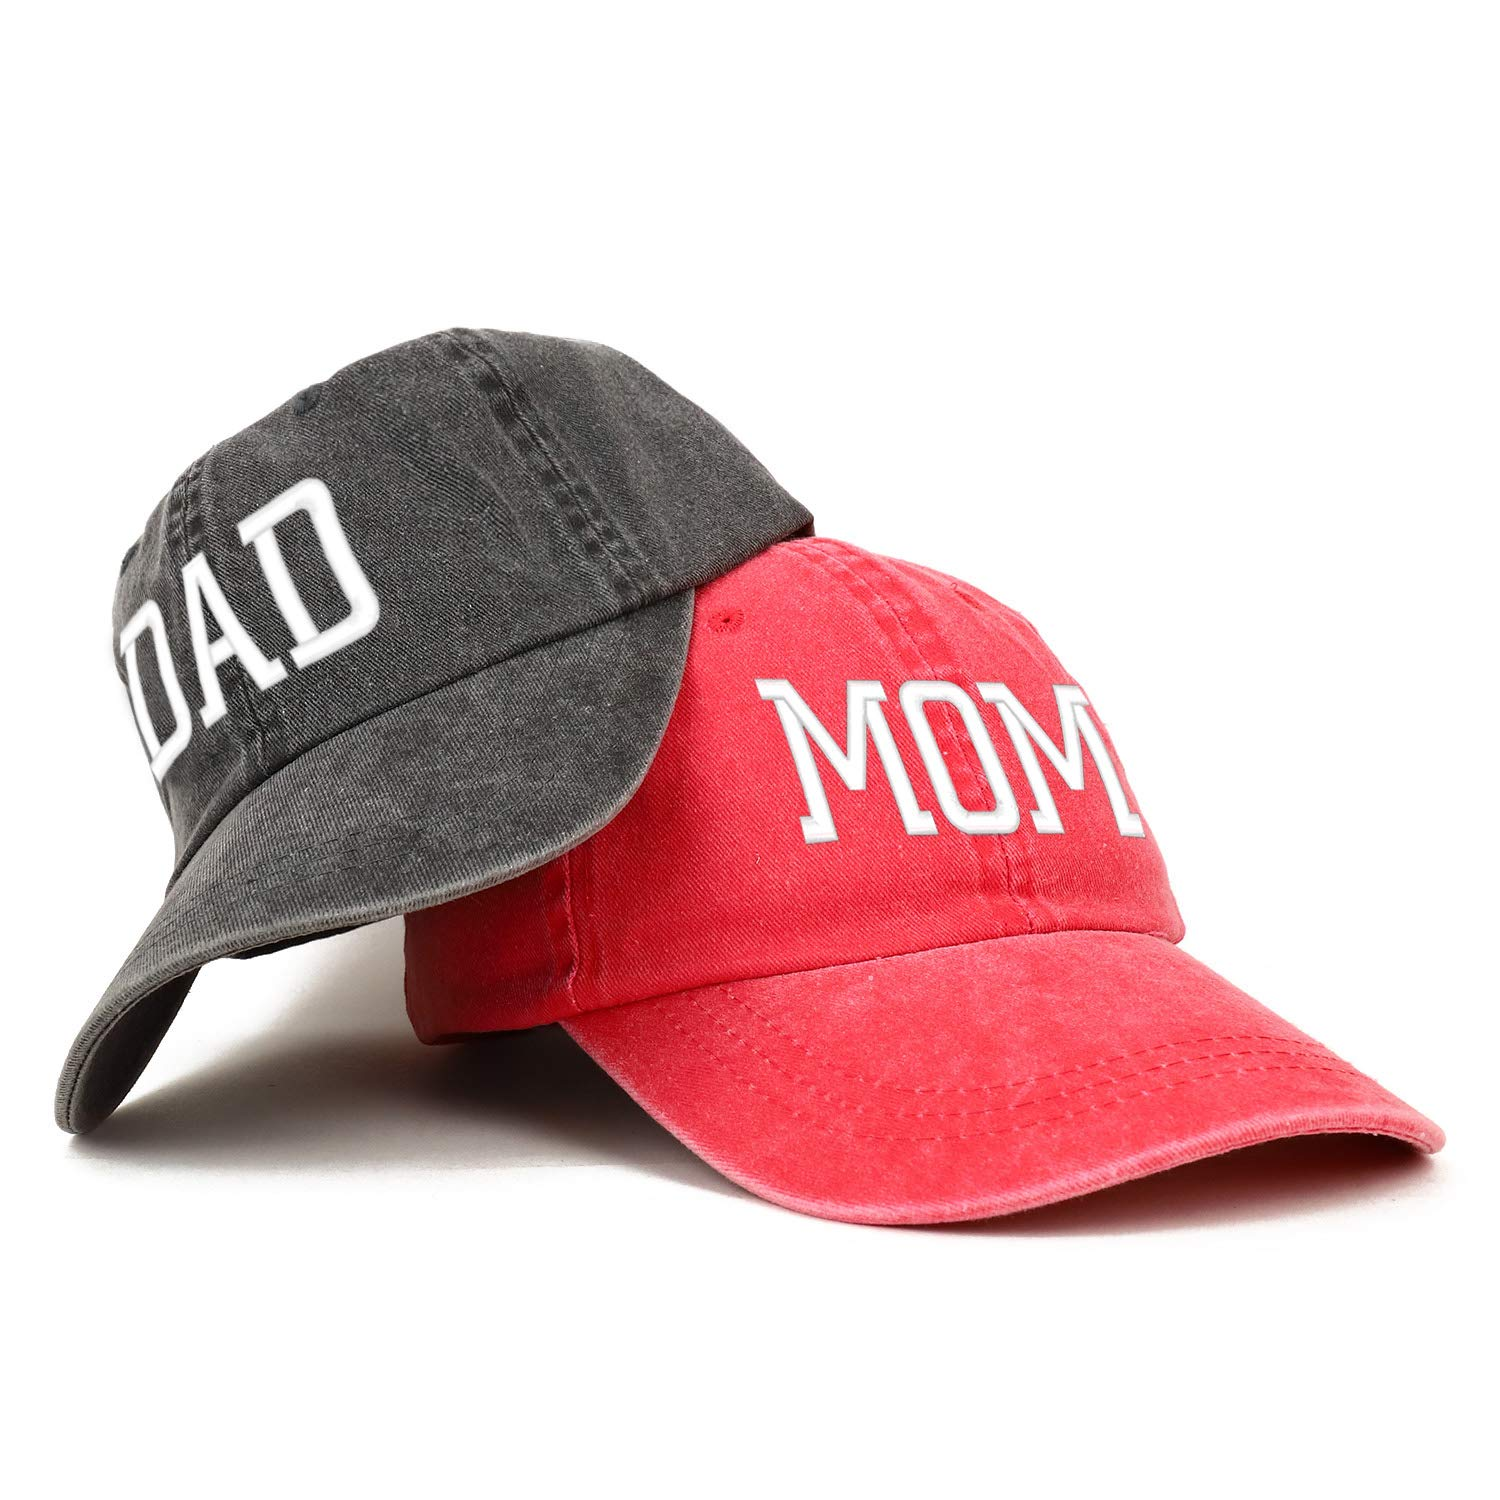 Trendy Apparel Shop Capital Mom and Dad Pigment Dyed Couple 2 Pc Cap Set - RED - Black